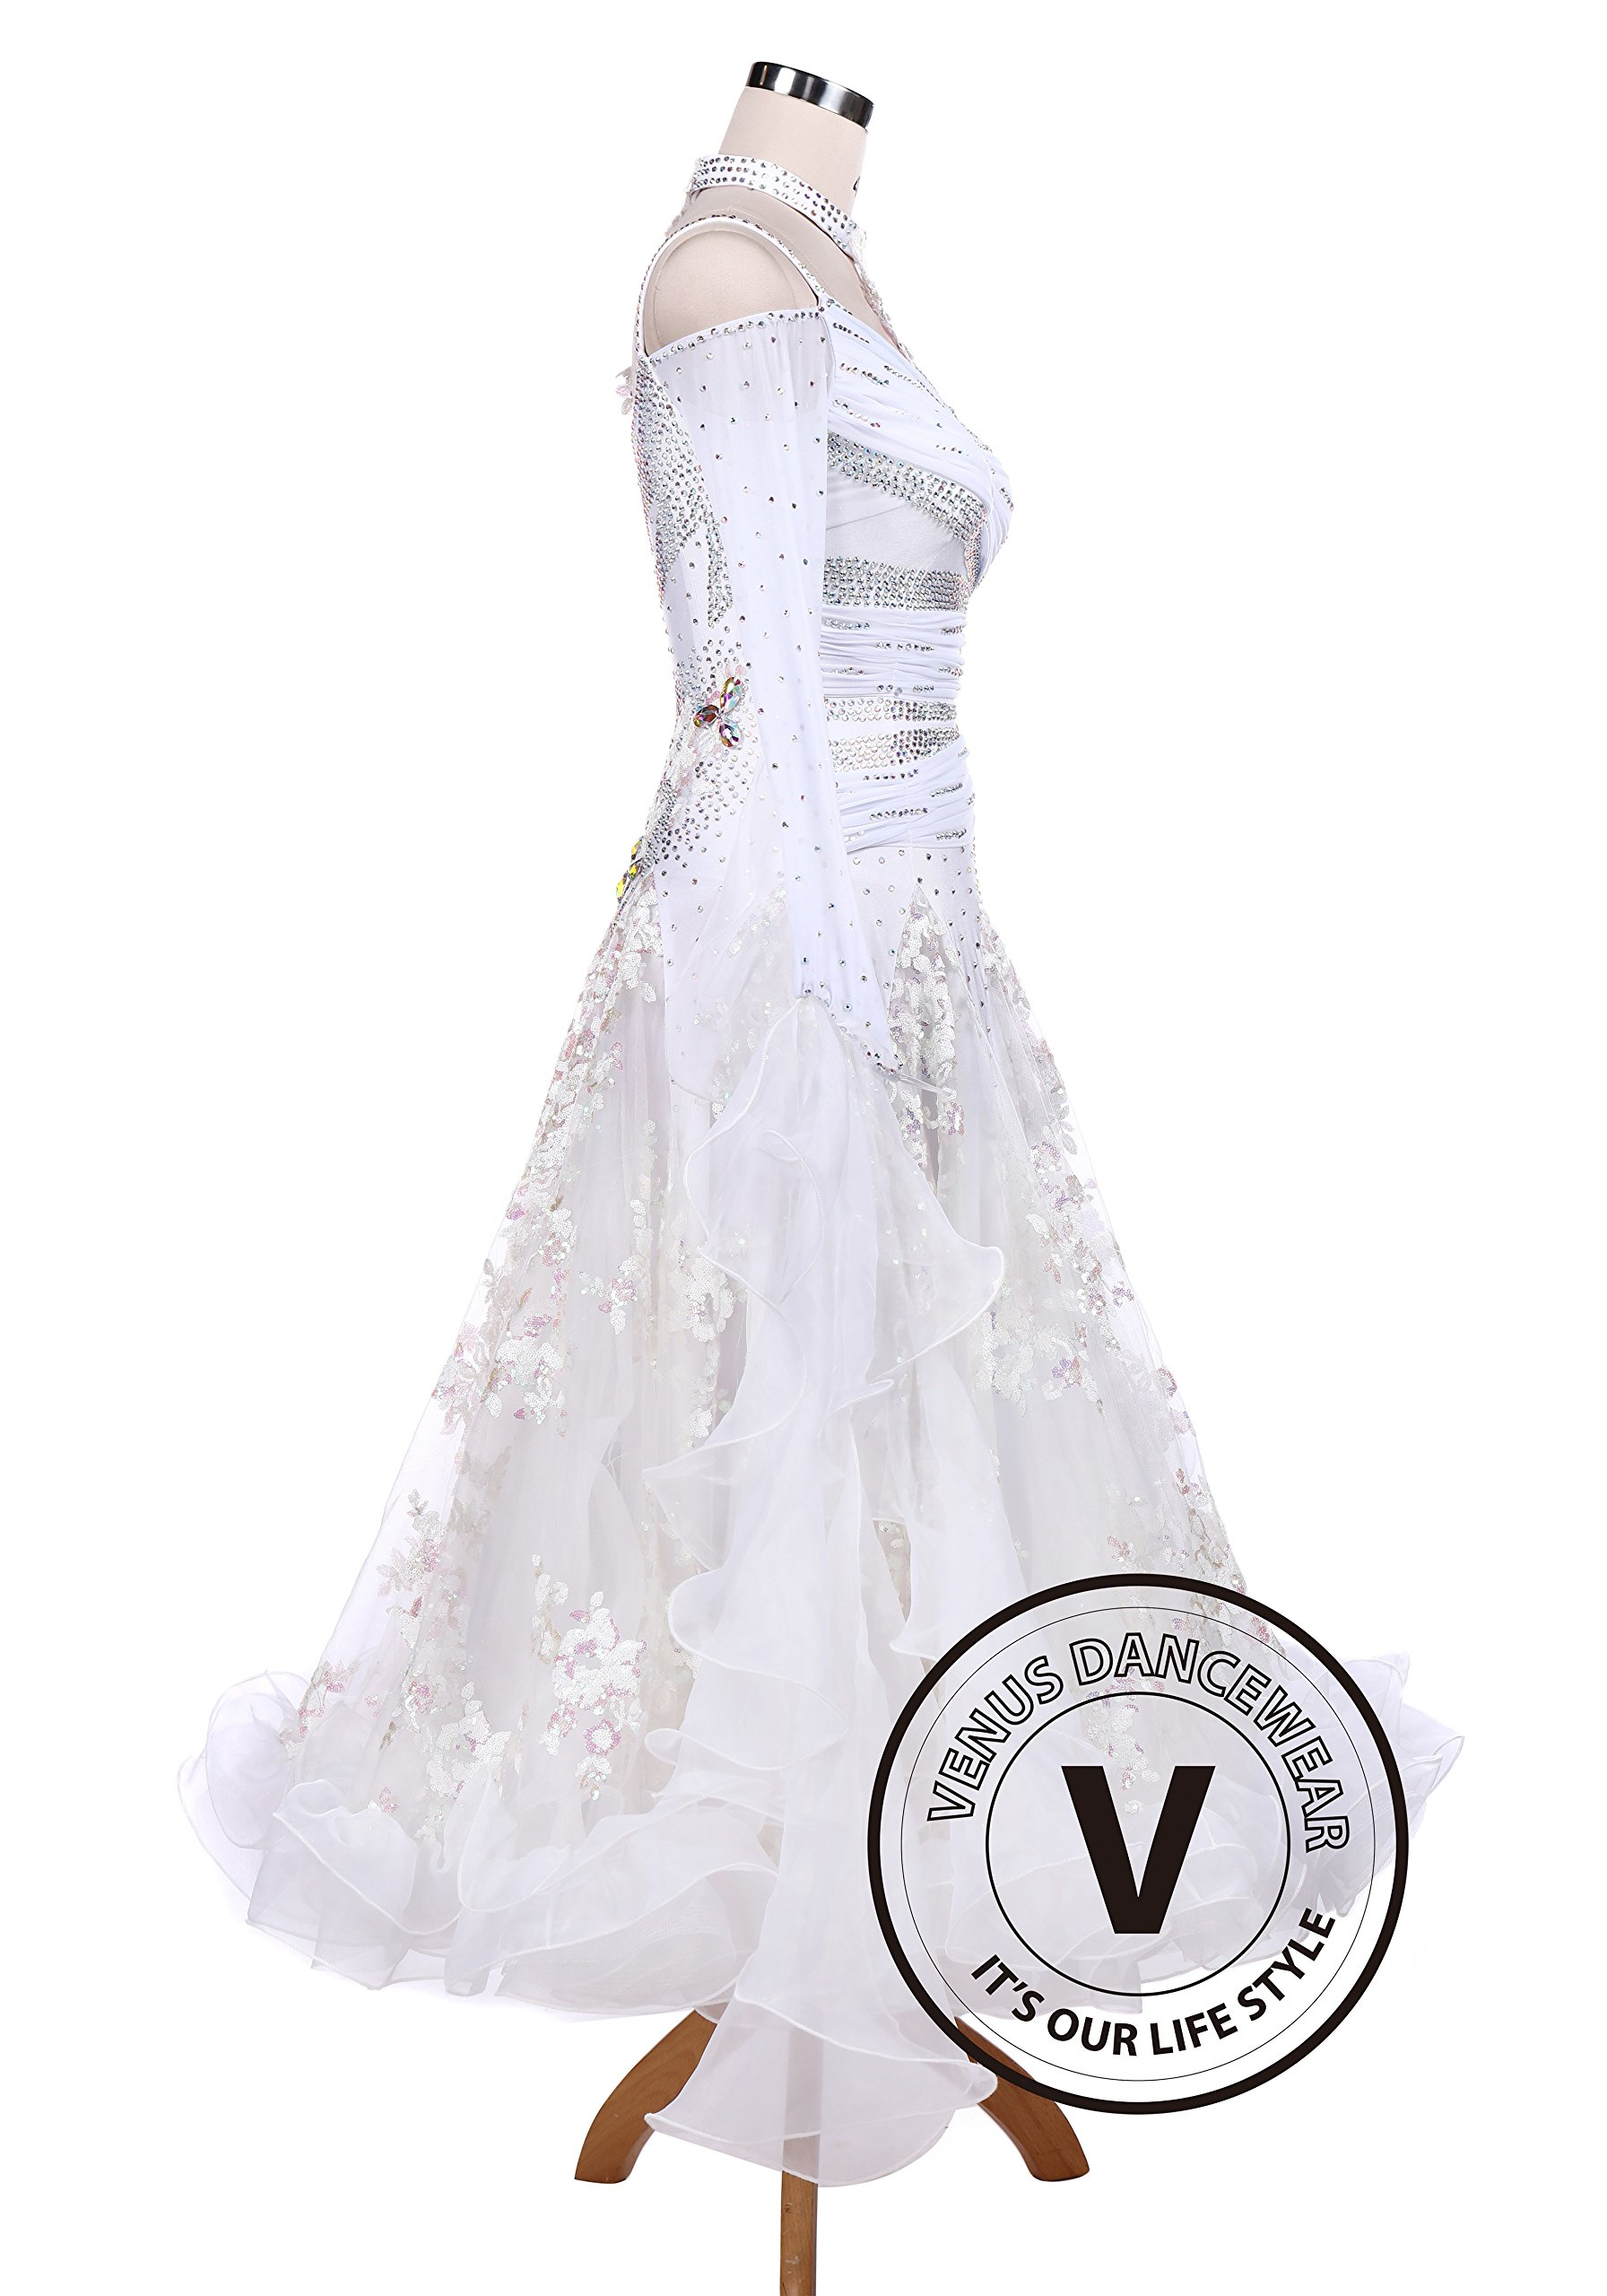 White Sequin Embroidered Ballroom Competition Dance Dress by Venus Dancewear (Image #3)